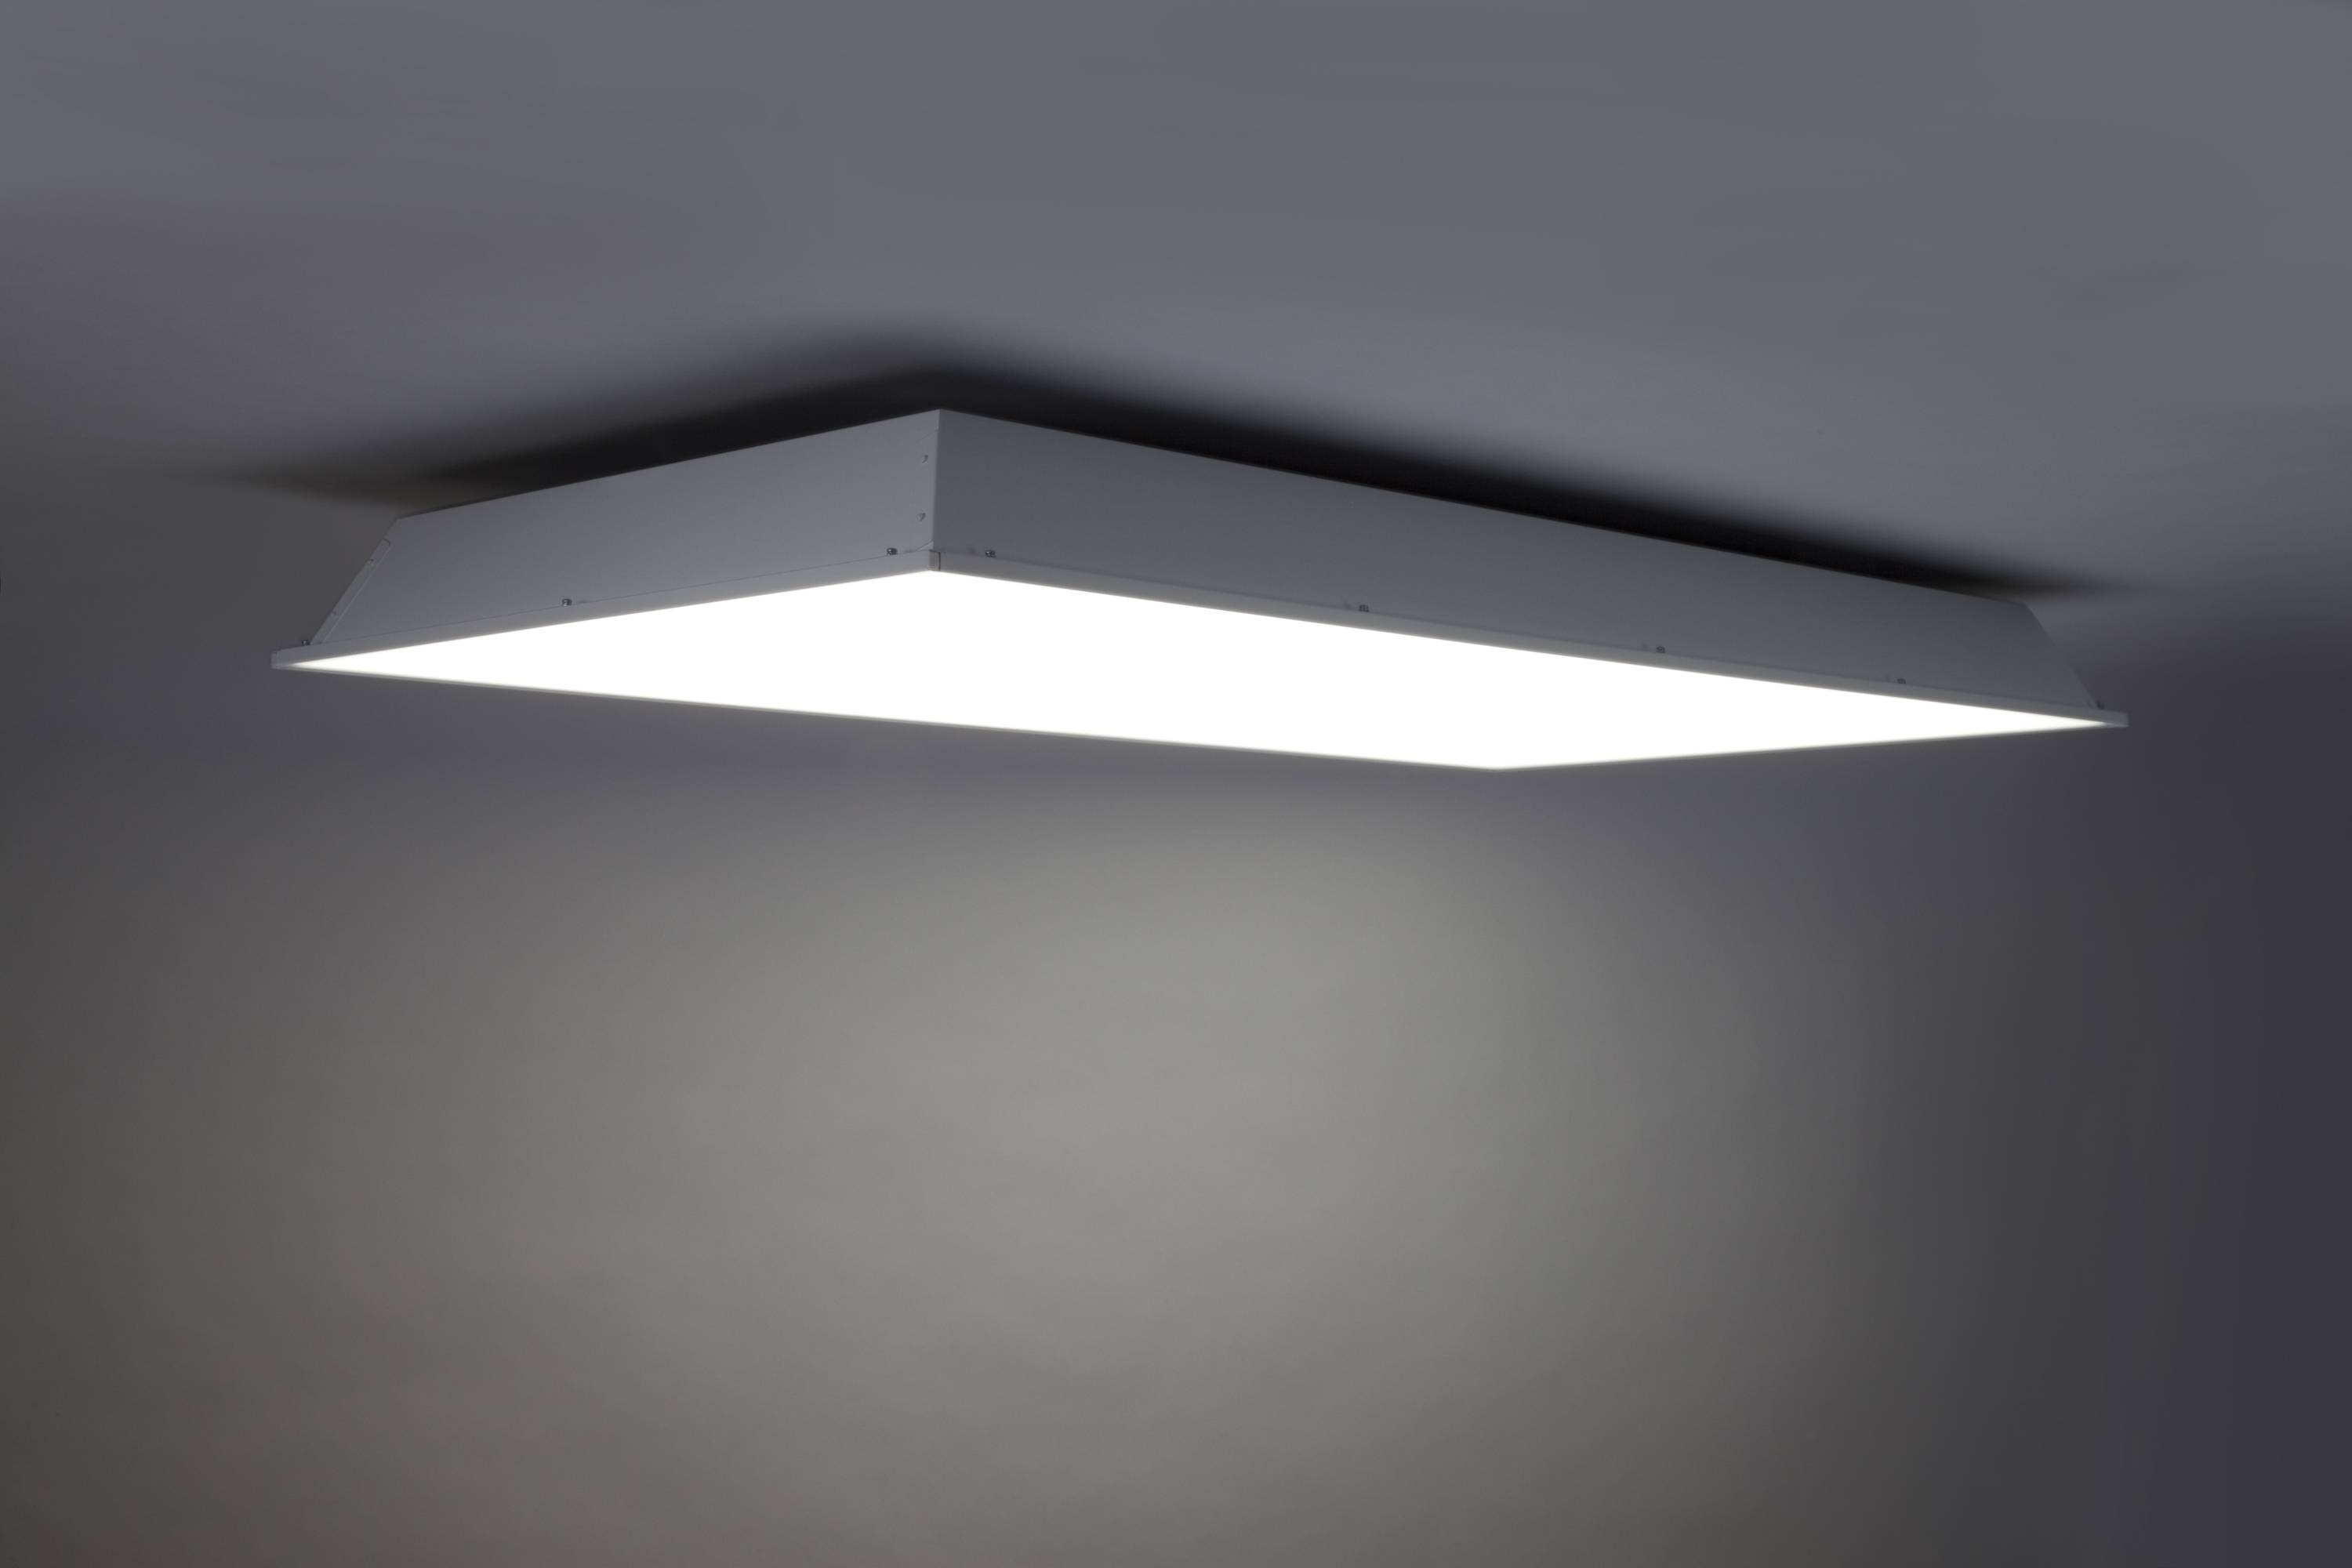 Led Light Design: Sophisticated Led Ceiling Light Fixture Led intended for Commercial Pendant Light Fixtures (Image 10 of 15)